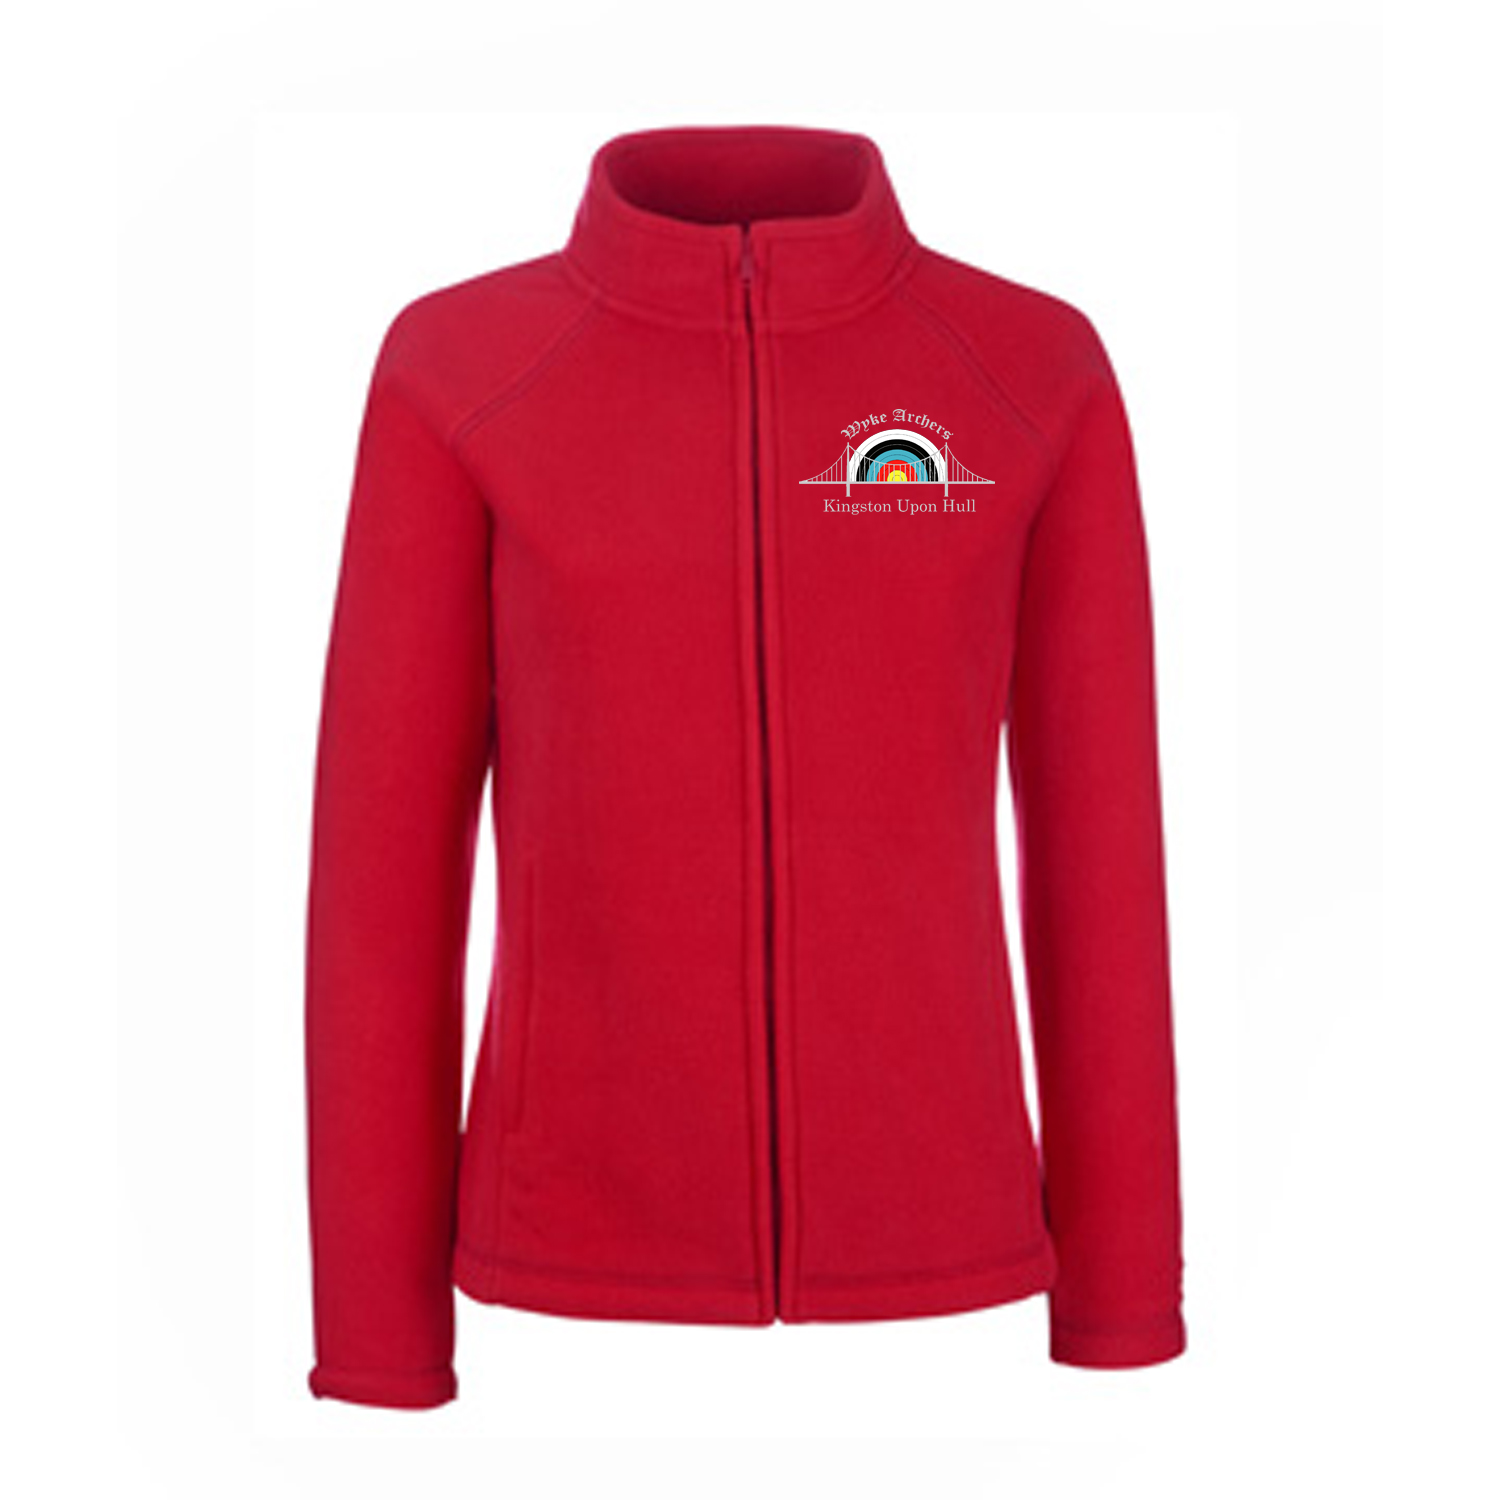 62066: Ladies Full Zip Outdoor Fleece (Fruit Of The Loom)